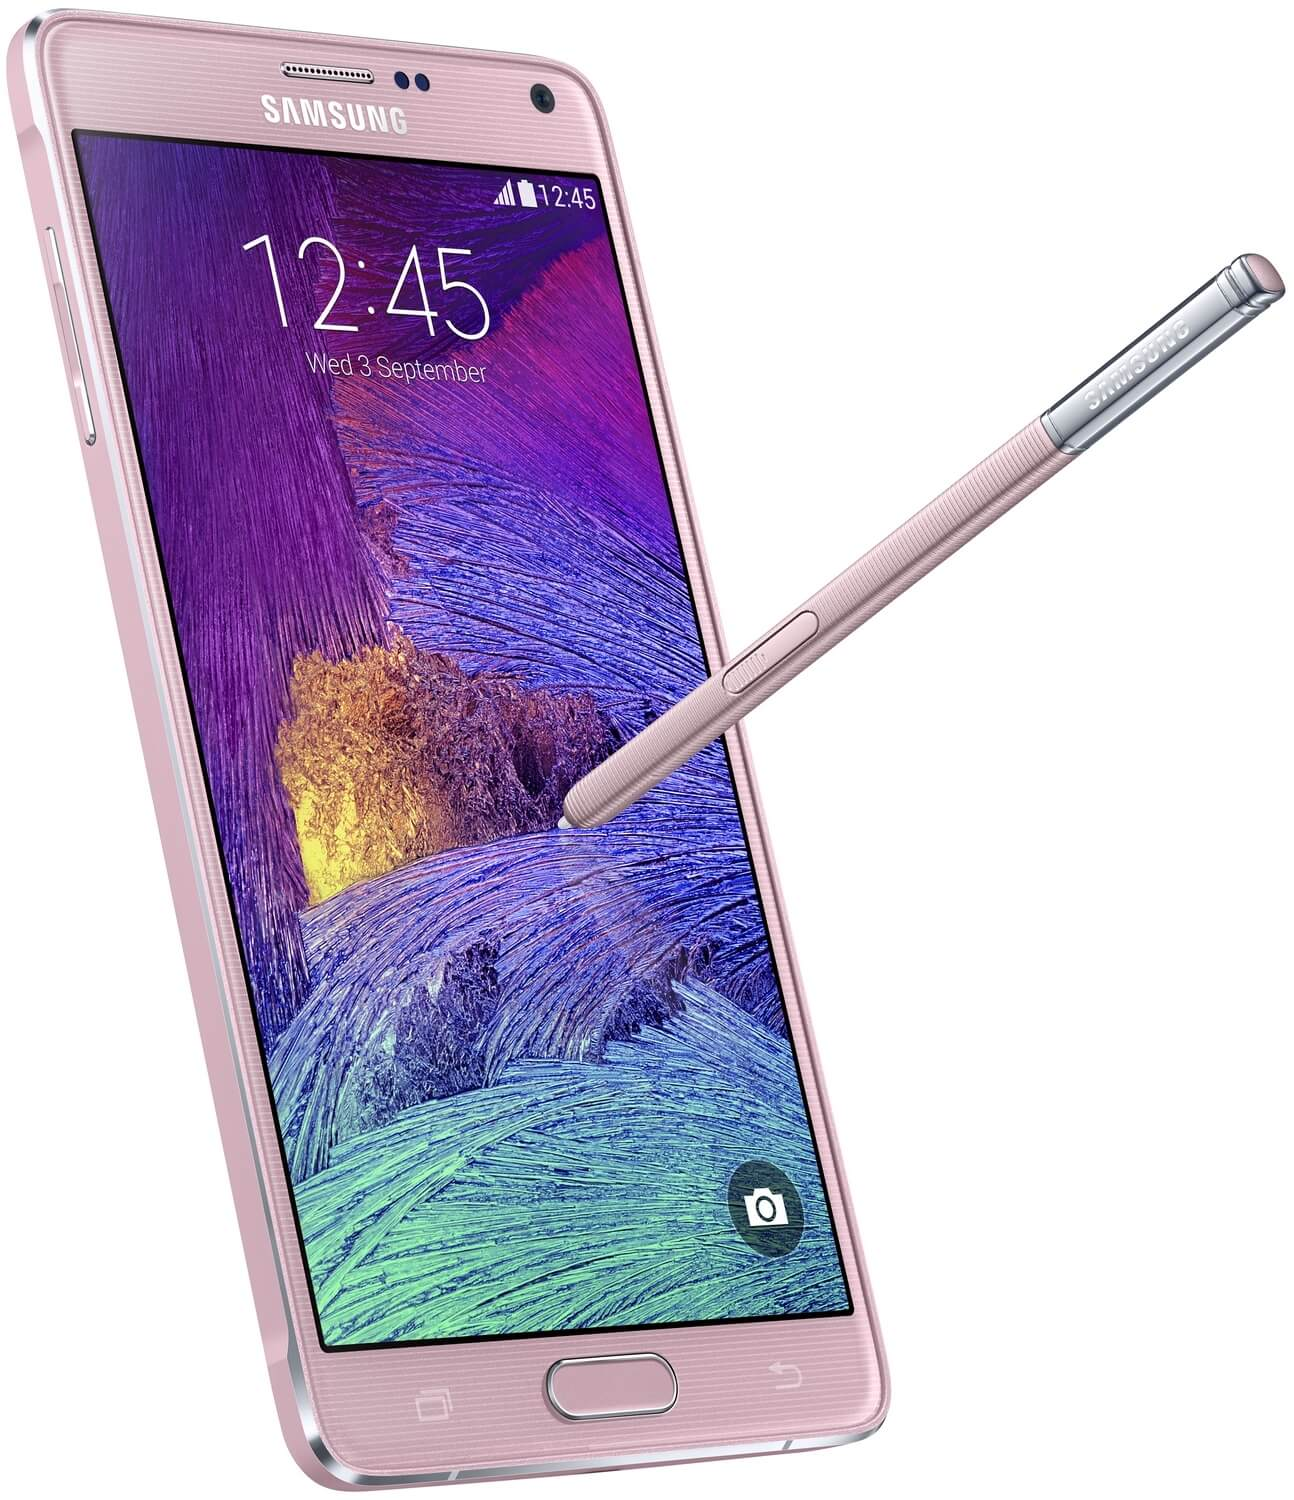 Samsung Galaxy Note 4 (N910H)